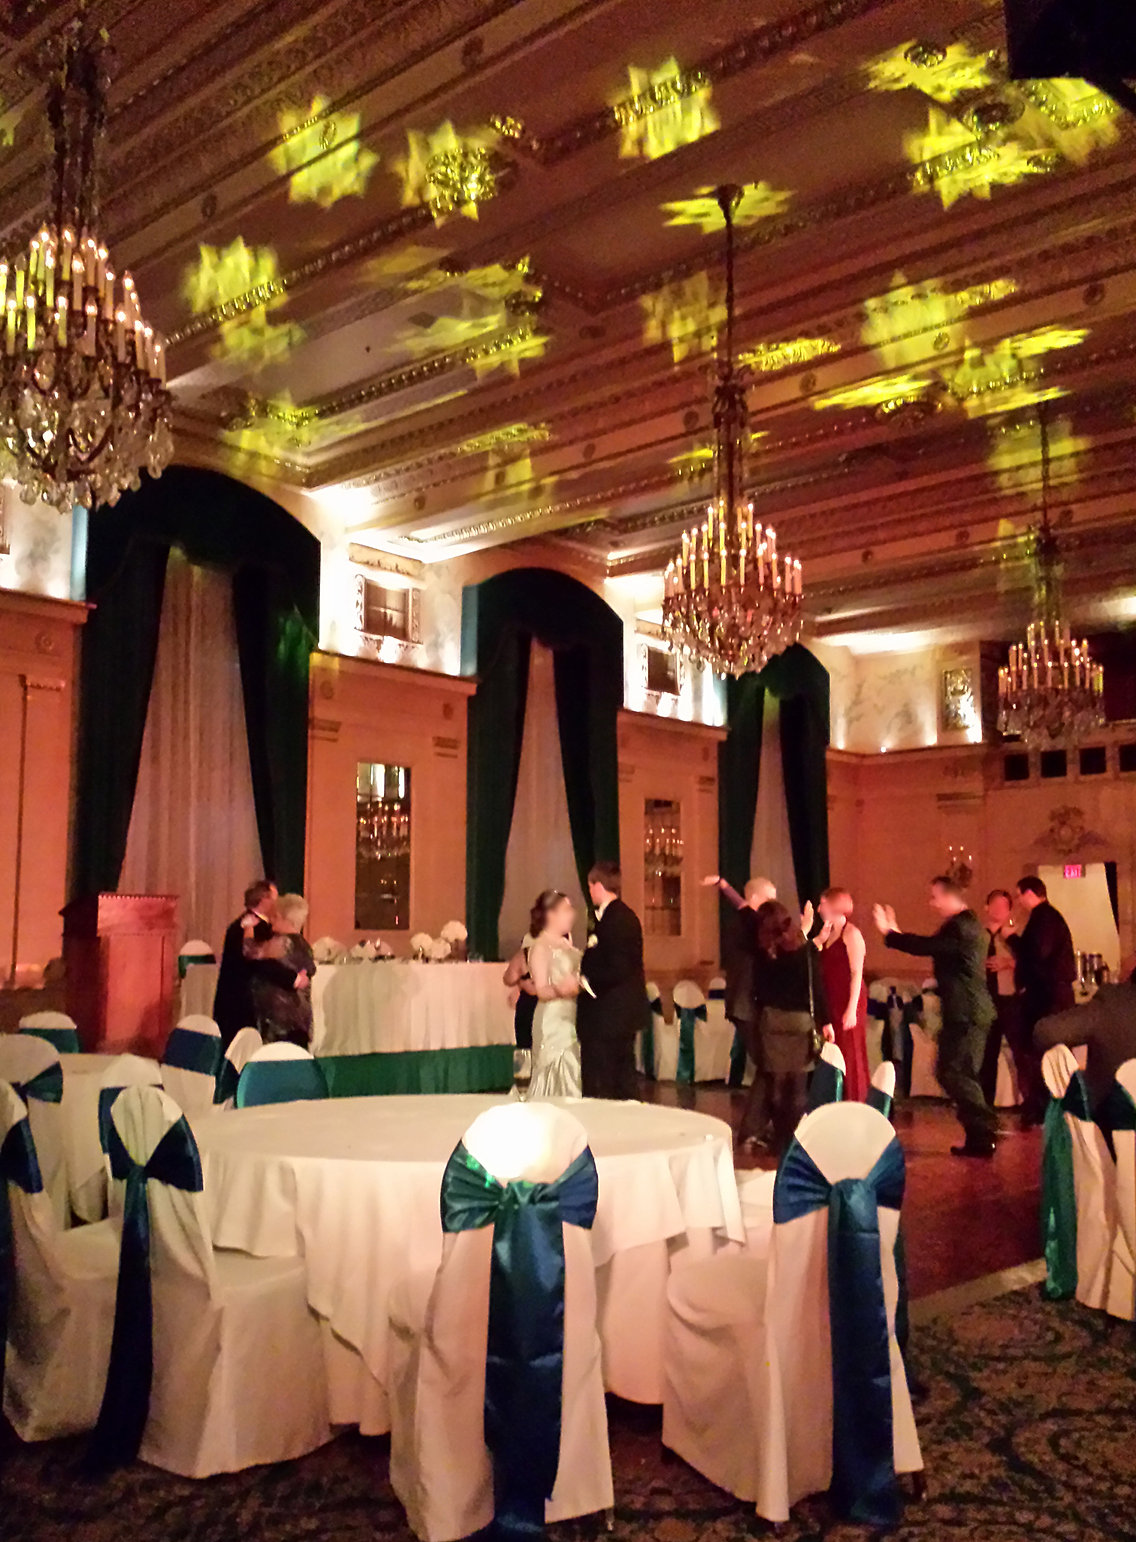 Dance Floor Light Shows And Ceiling Lighting From Serino Sound